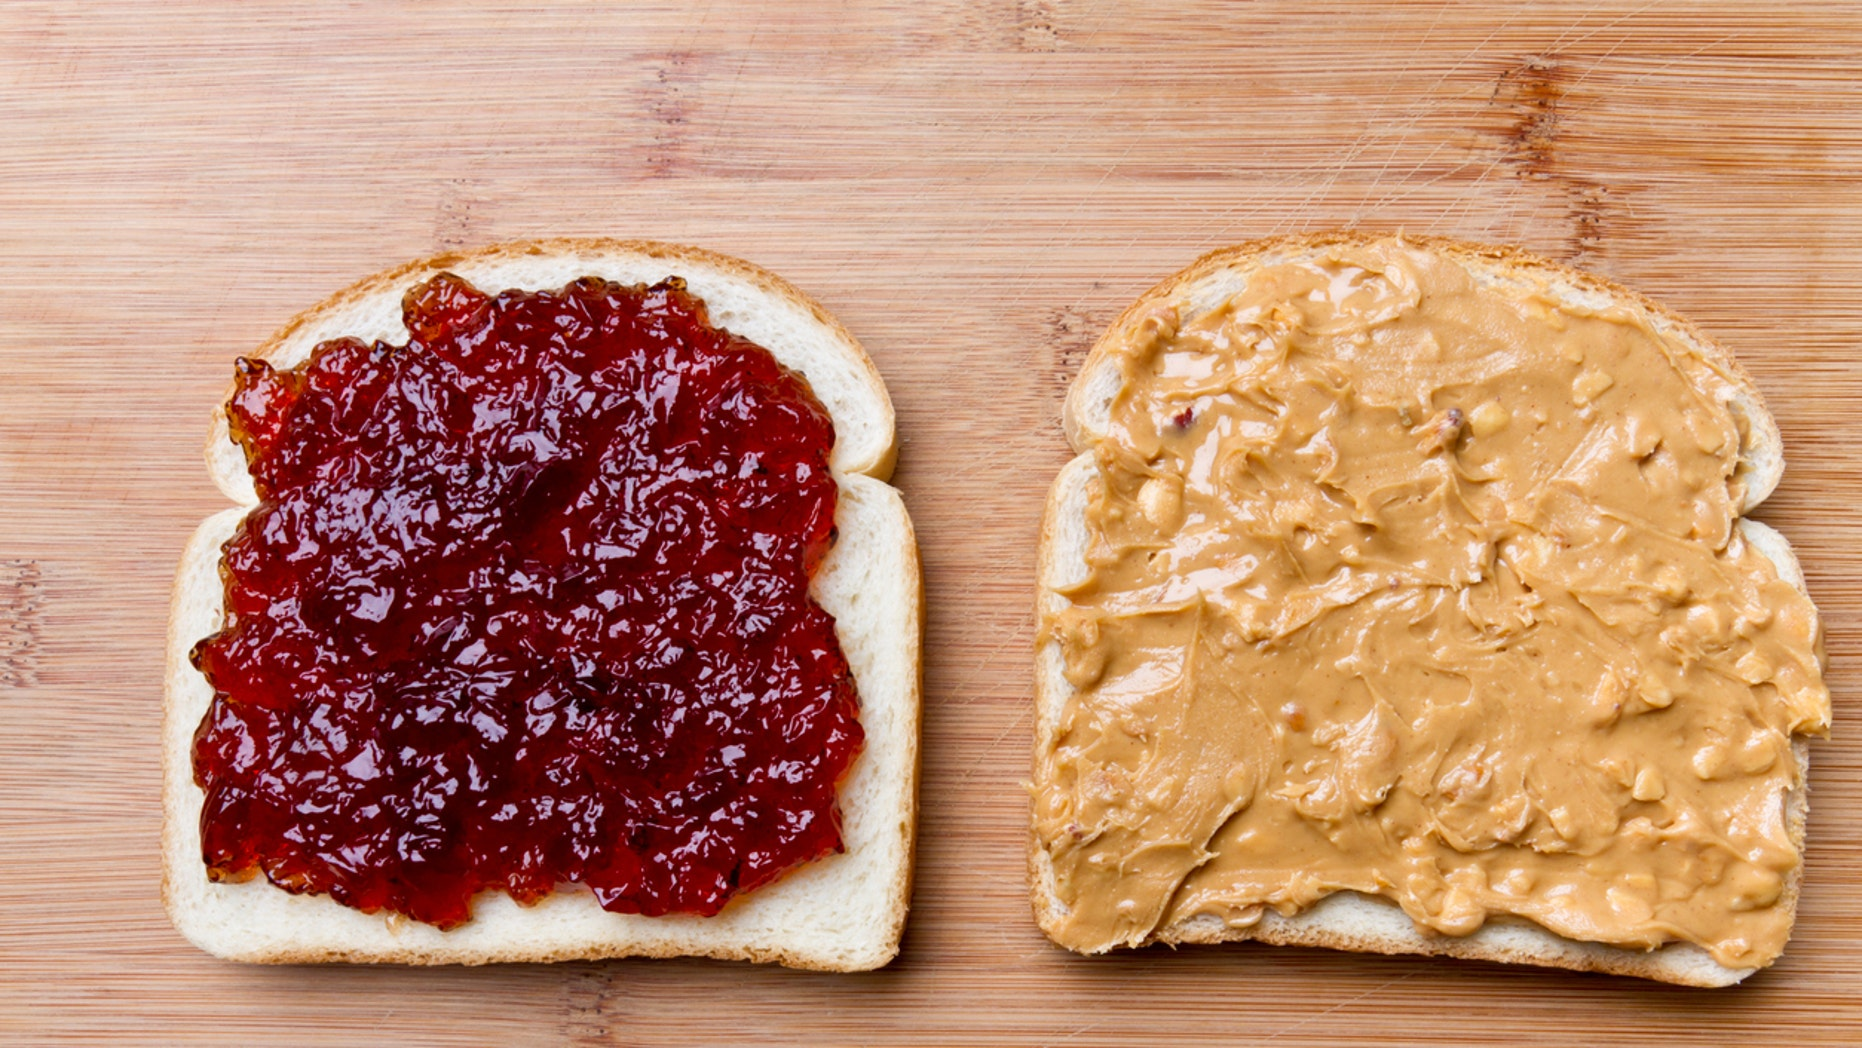 As should have been expected, people had opinions on how to make a peanut butter and jelly sandwich.